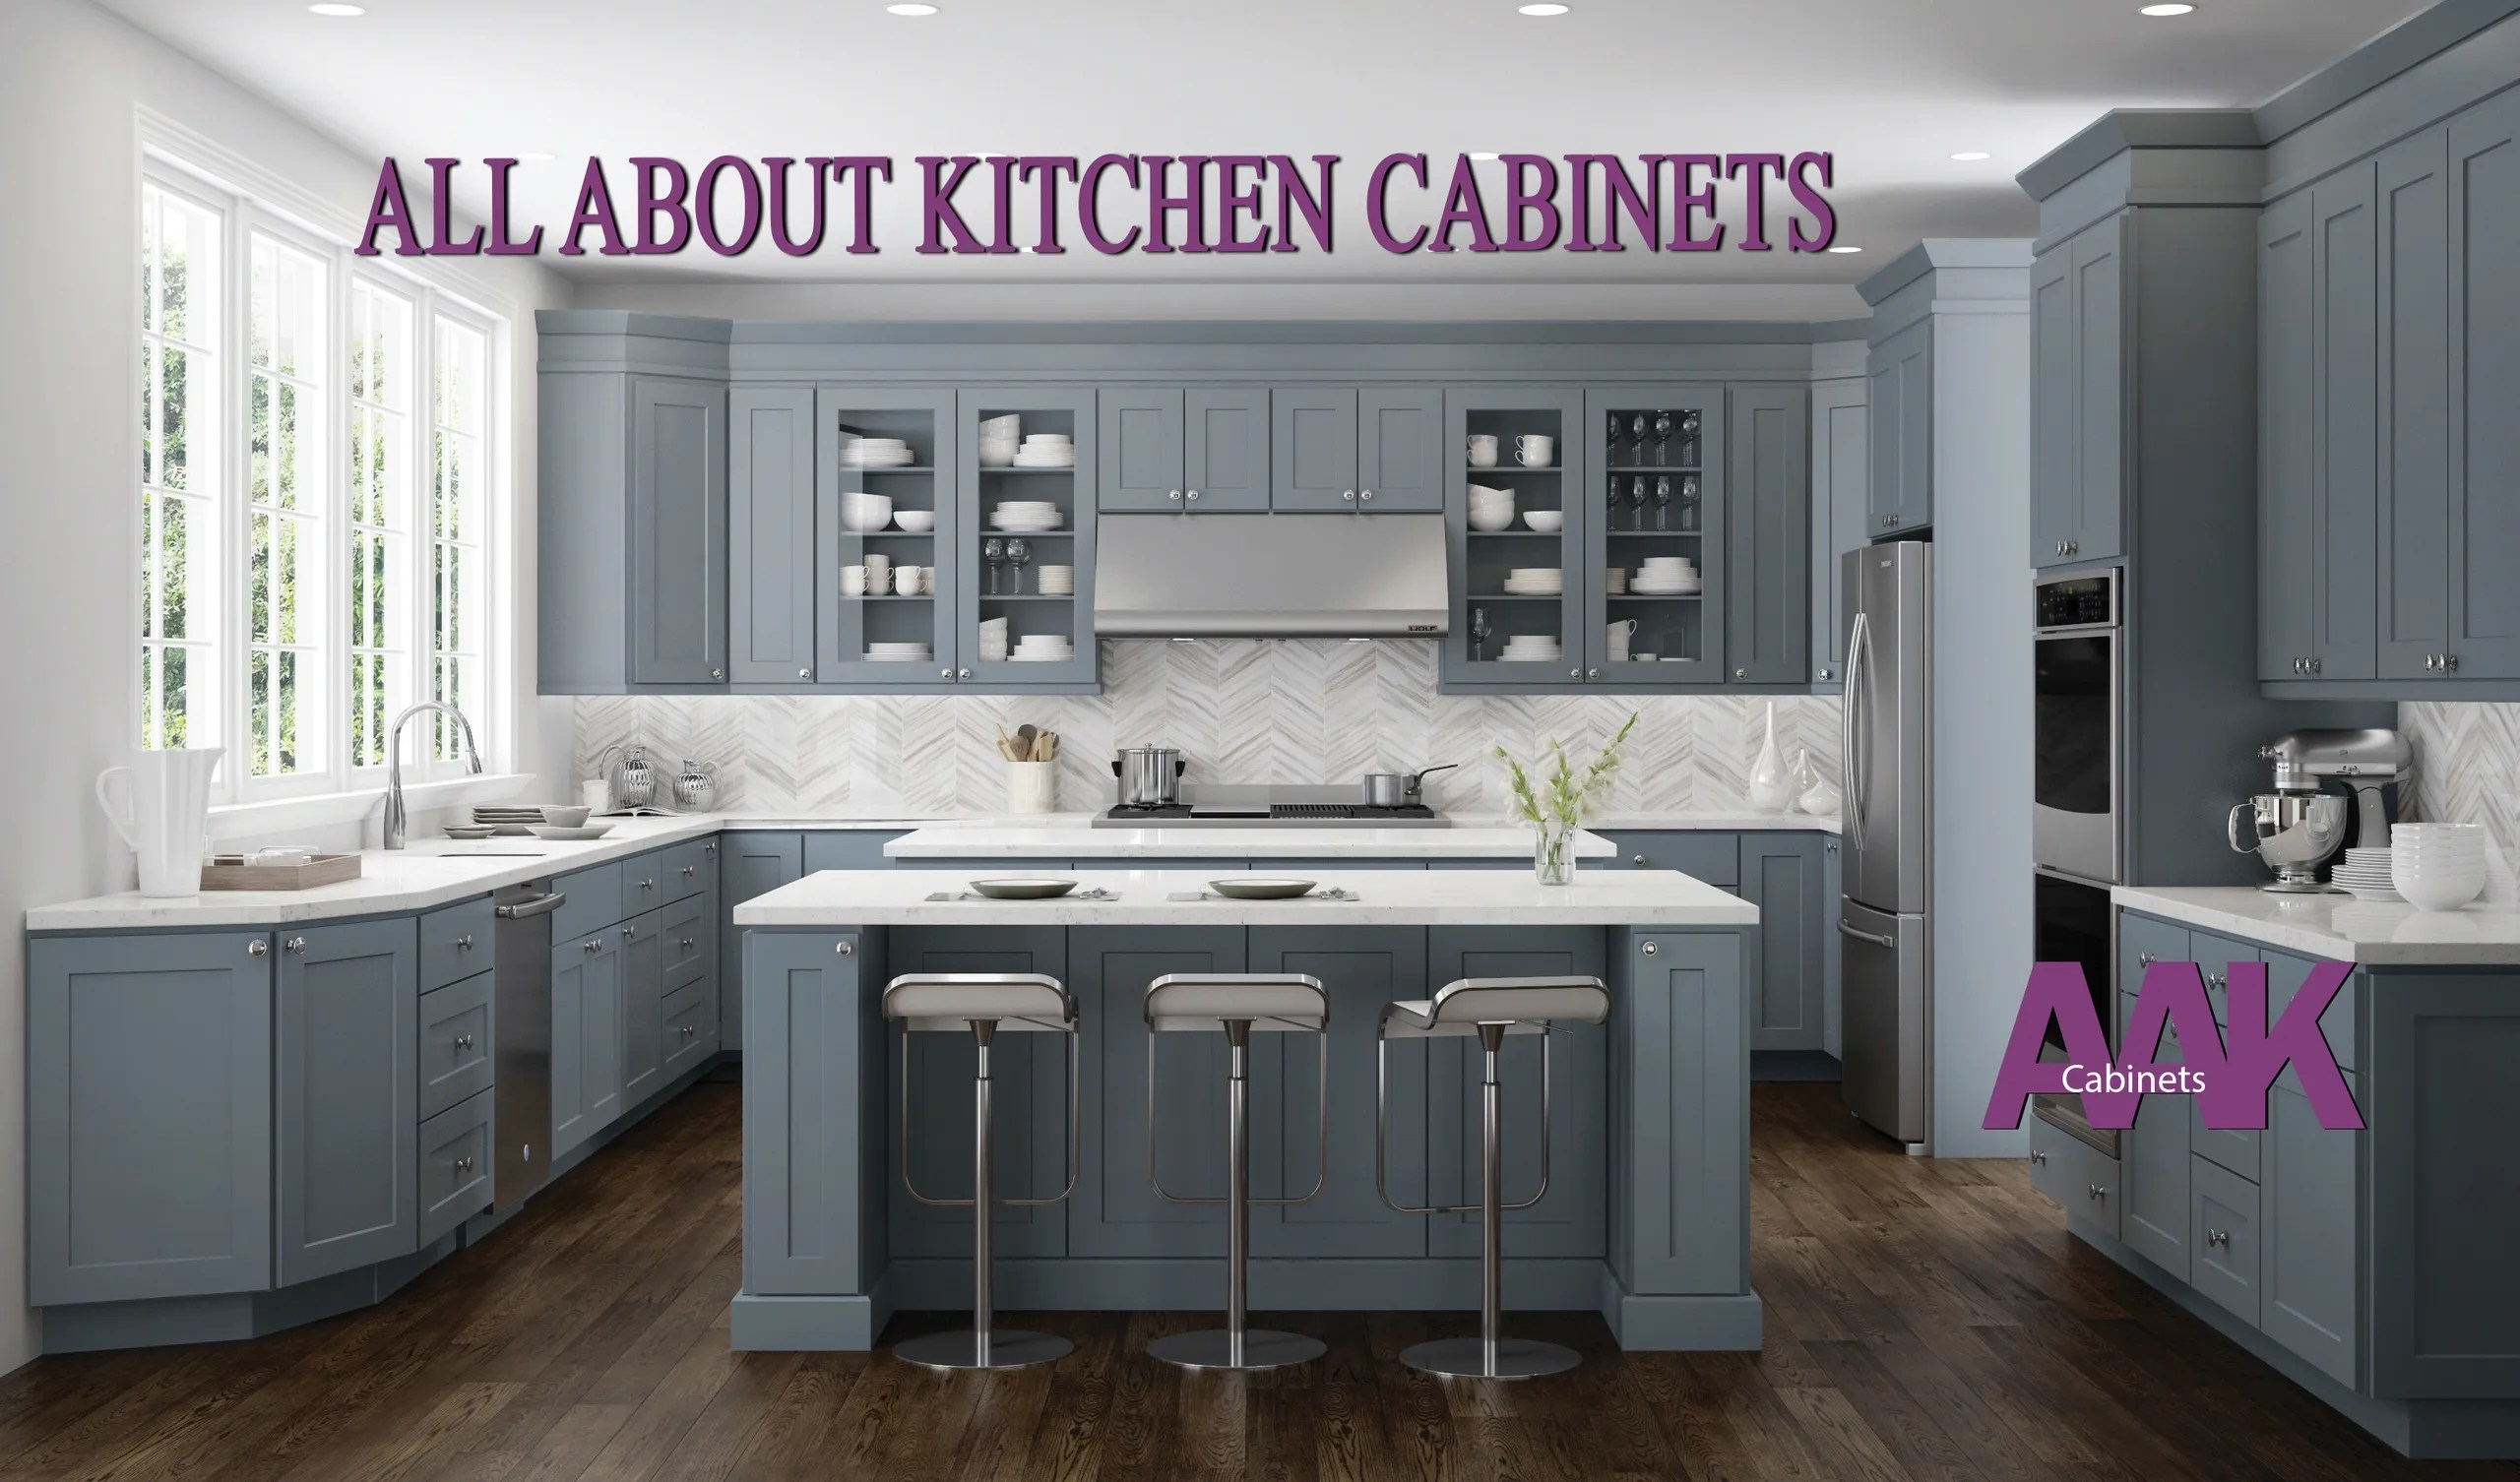 Kitchen Cabinets Birmingham Al Kitchen Cabinet Store All About Kitchen Cabinets